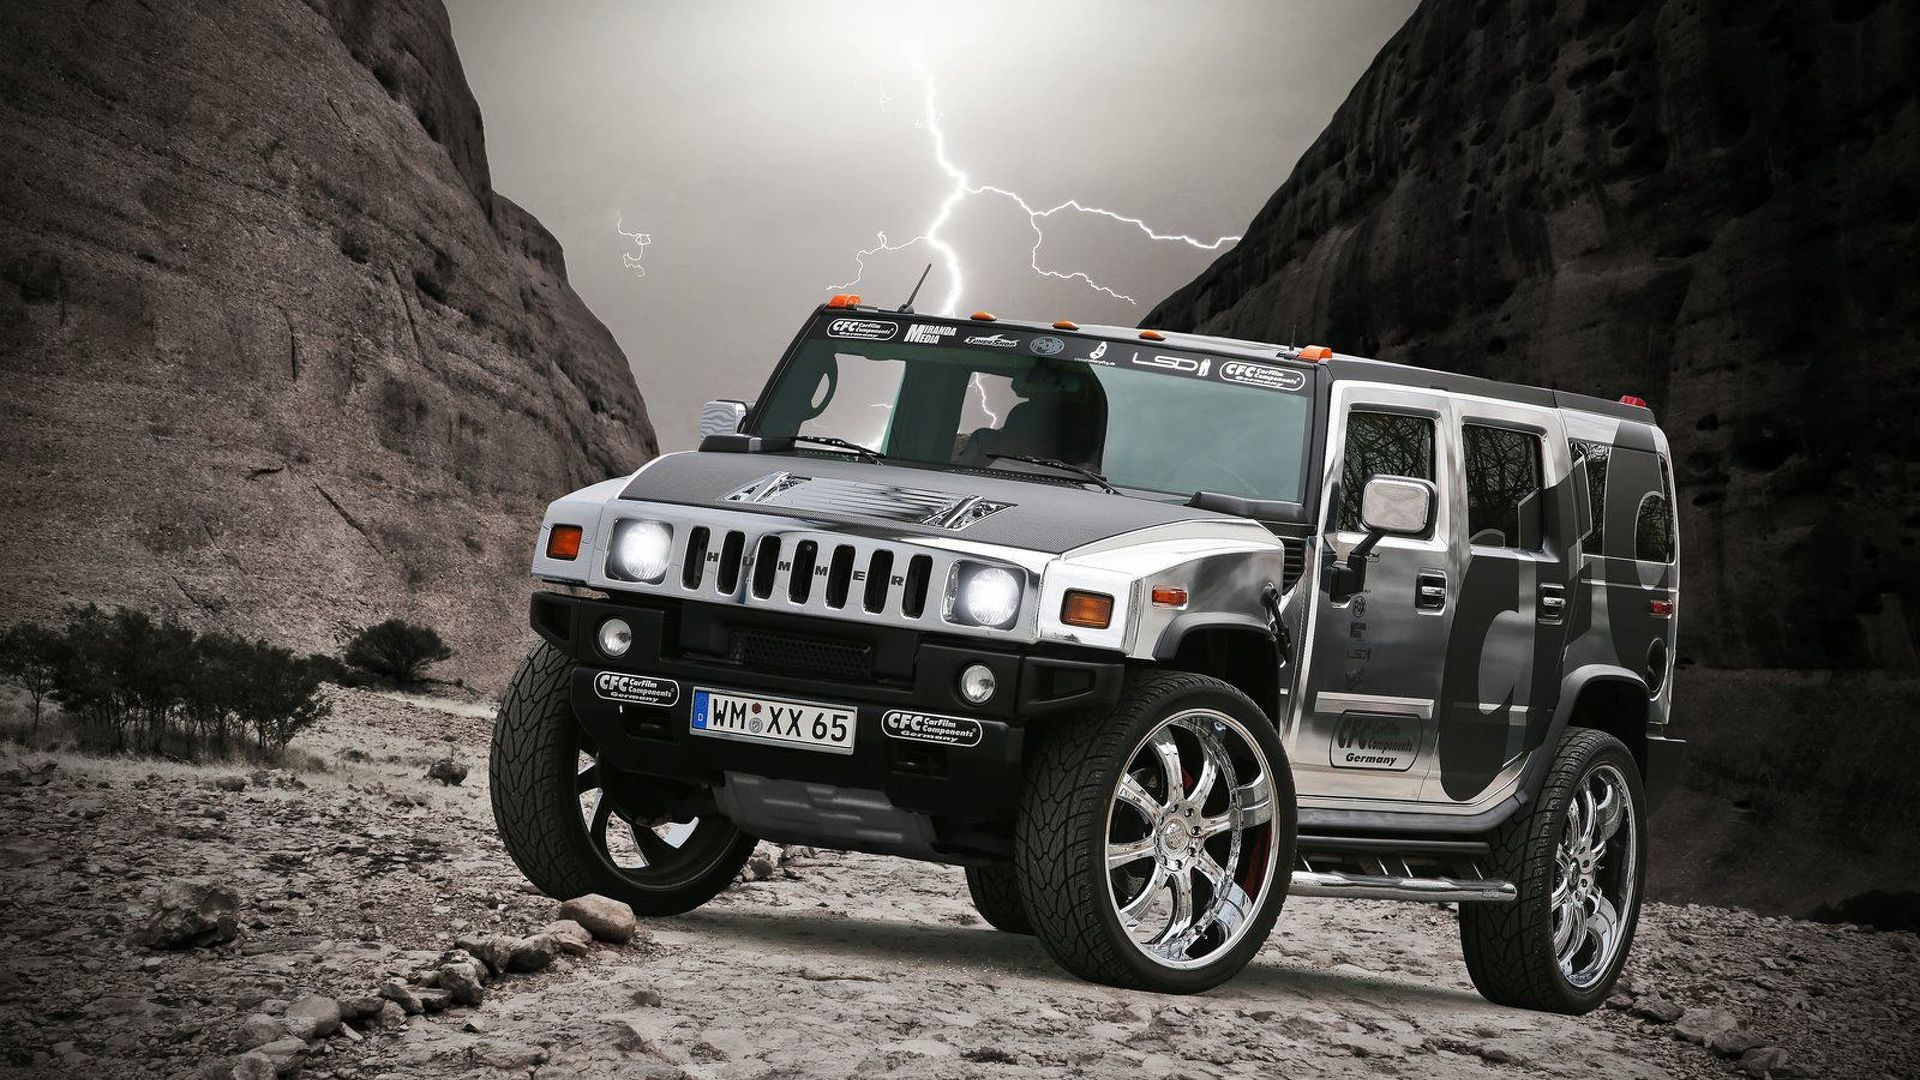 Hummer H2 Gets Chrome Wrap Art or Abomination